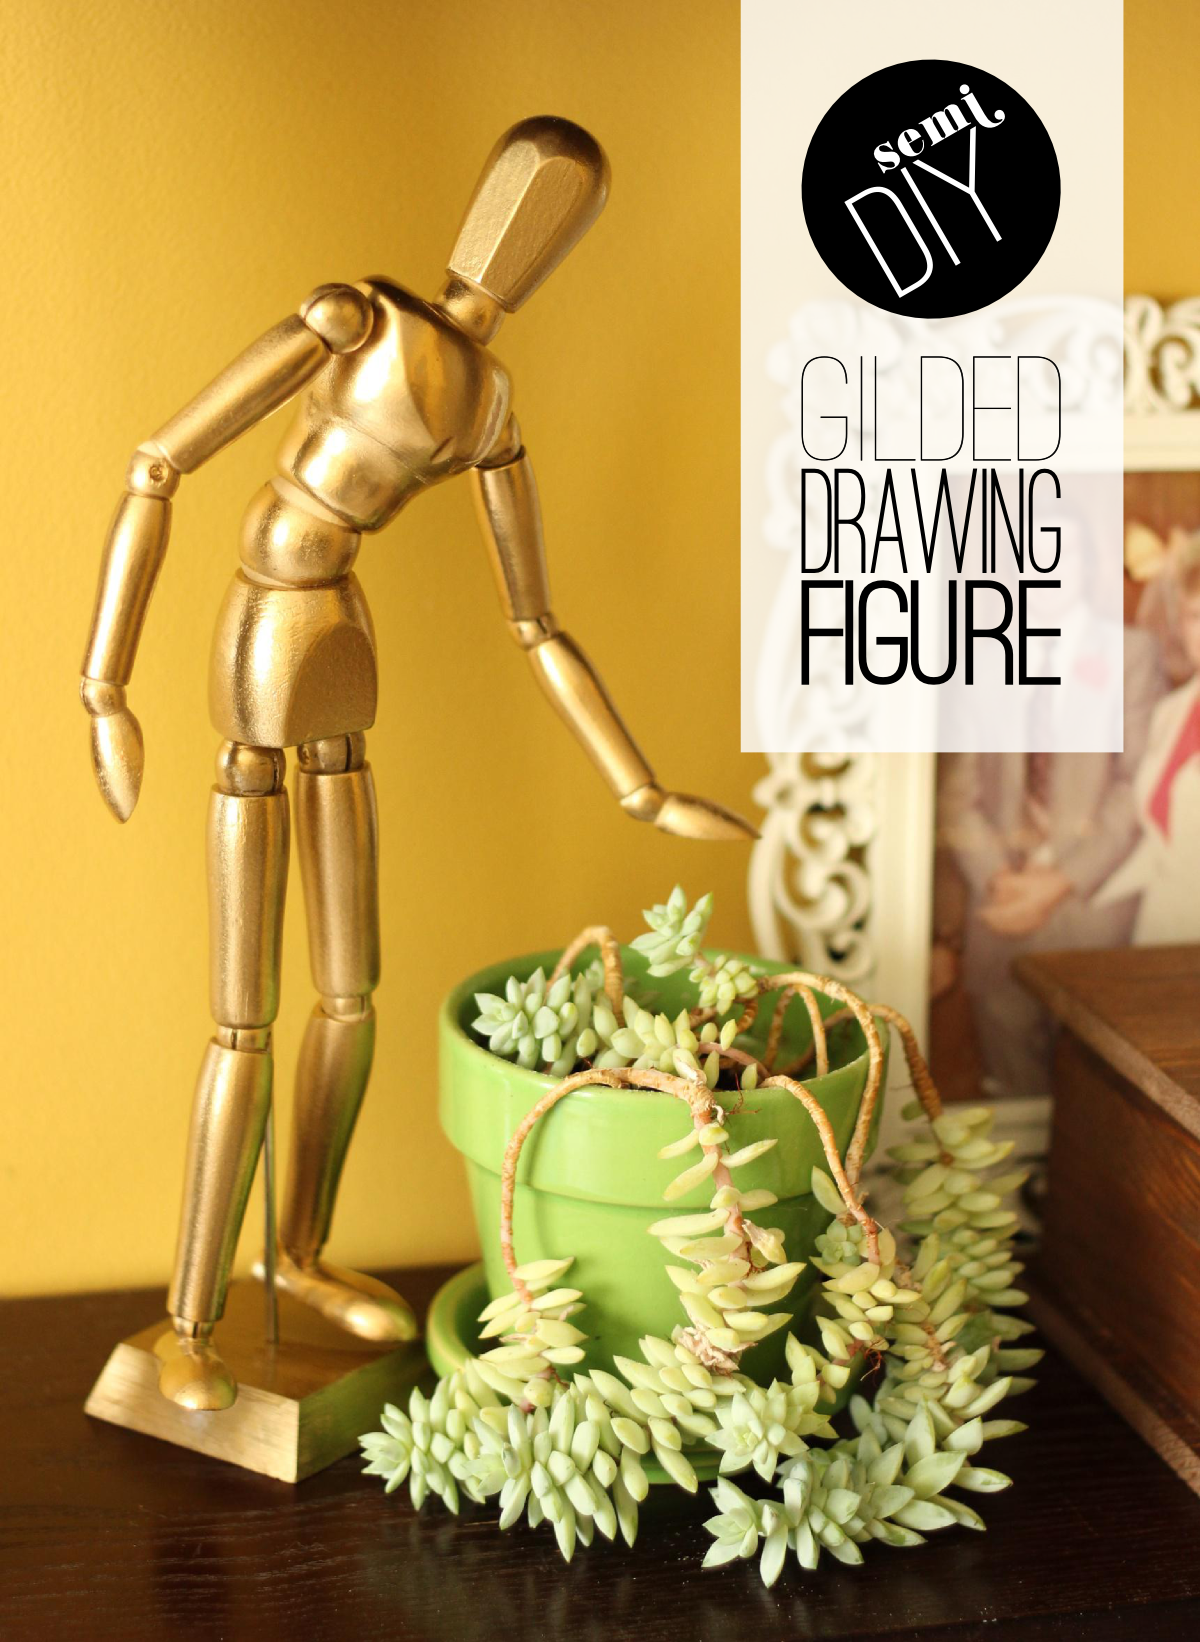 Fabric Paper Glue | DIY Gilded Drawing Figure